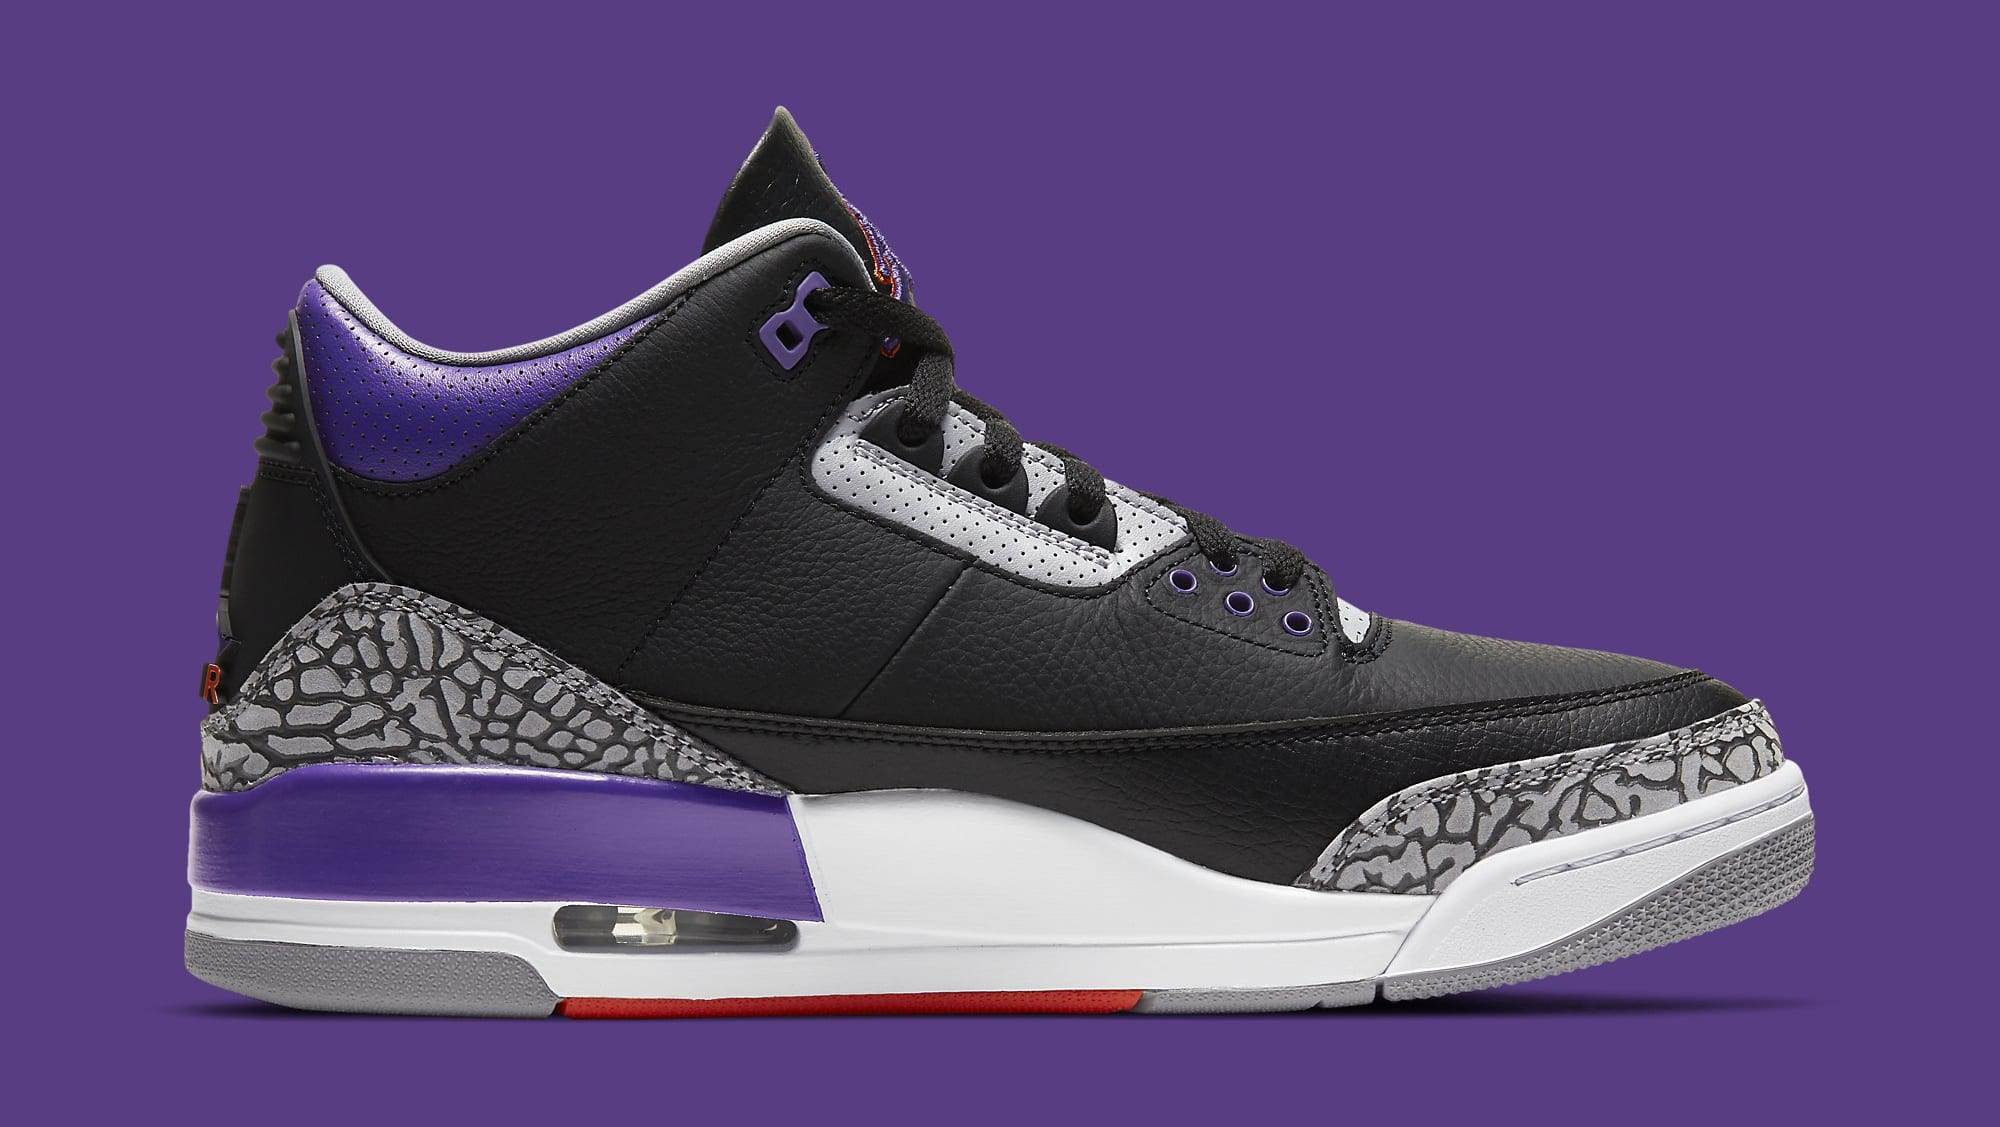 Air Jordan 3 Retro 'Court Purple' CT8532-050 Medial